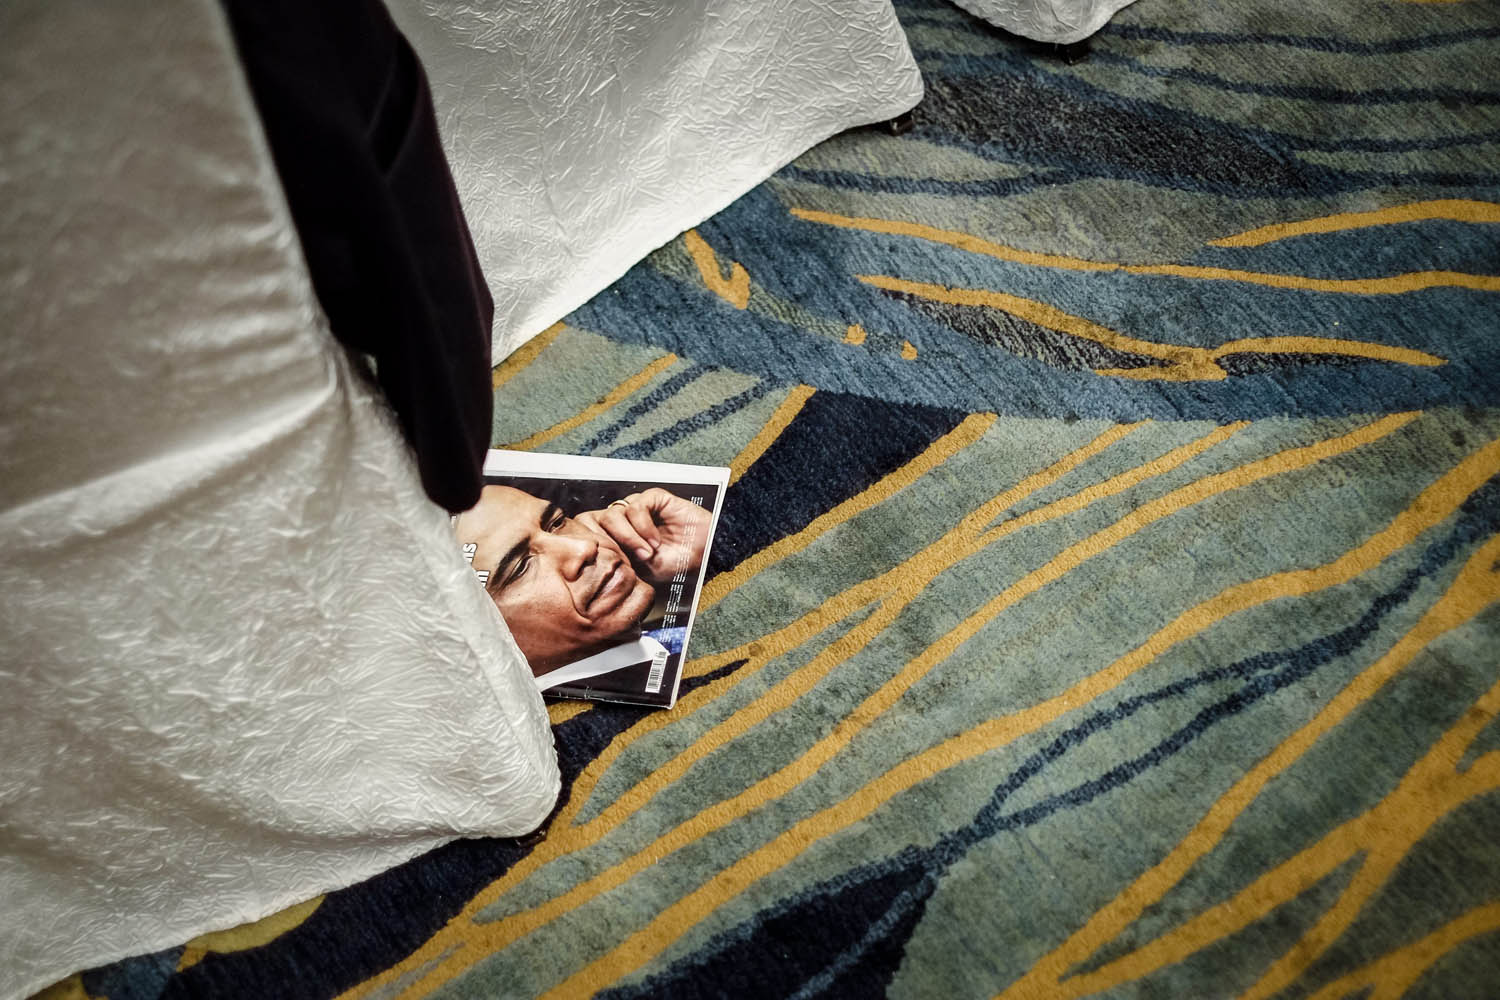 June 2, 2013. A magazine with a picture of US President Barack Obama pokes out from underneath a delegate's chair during a plenary session on the third day of The International Institute for Strategic Studies (IISS) 12th Asia Security Summit in central Singapore.